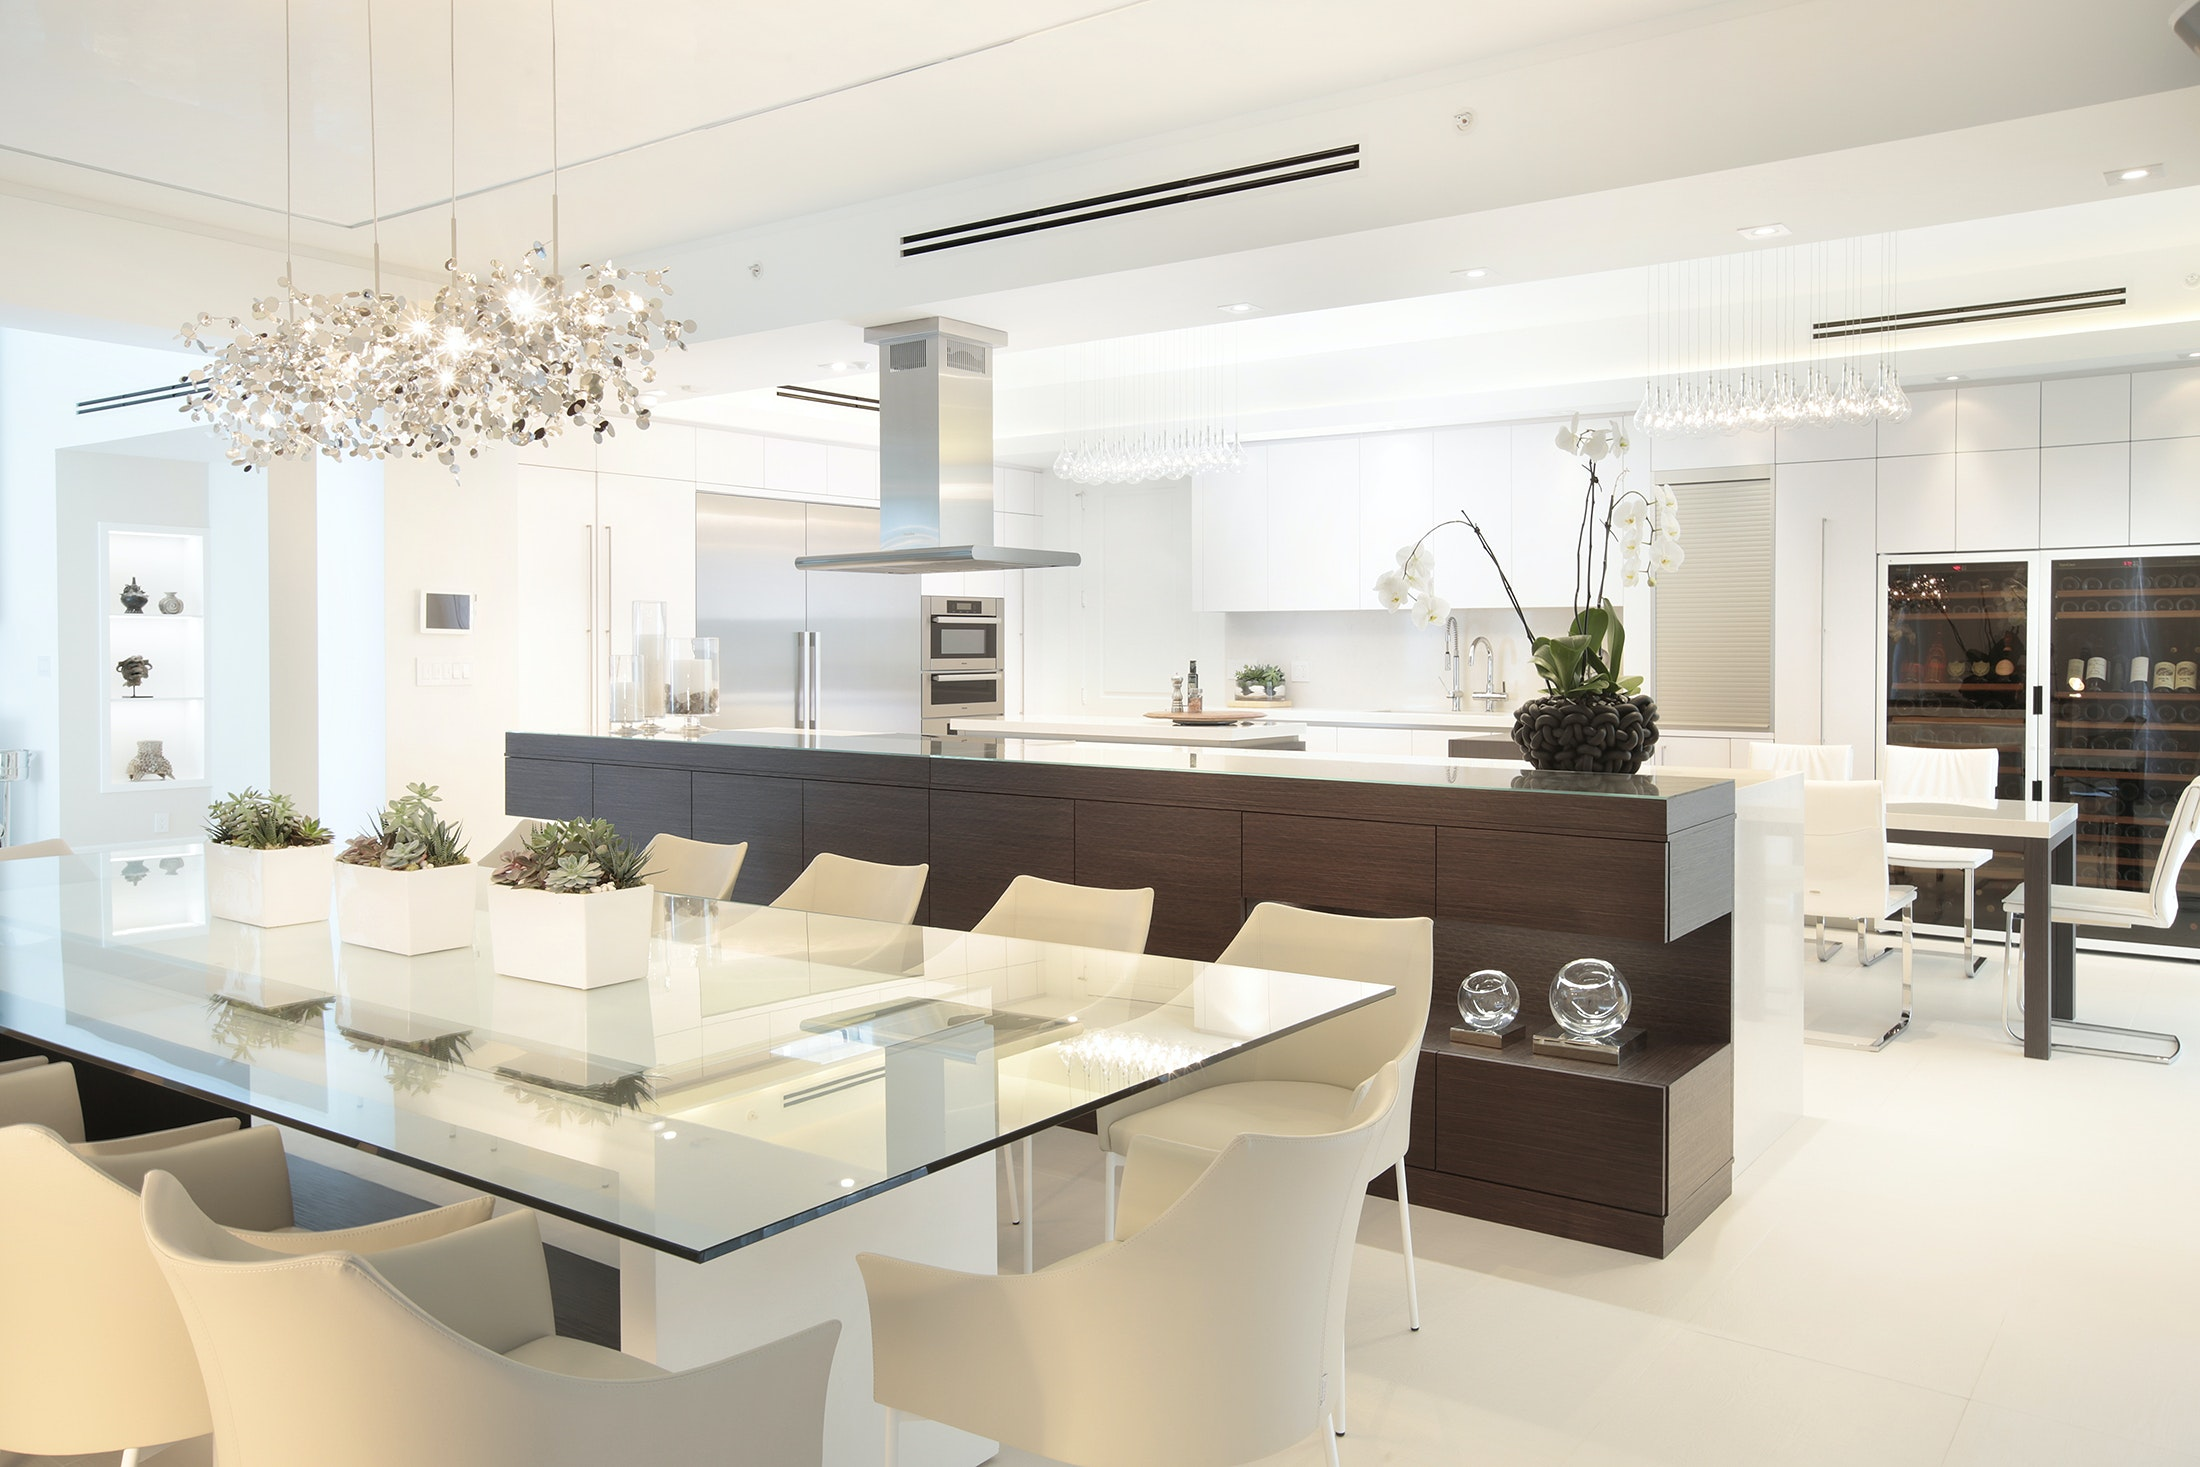 Attractive Dining Room And Kitchen   Residential Interior Design Project In Fort  Lauderdale, Florida By DKOR